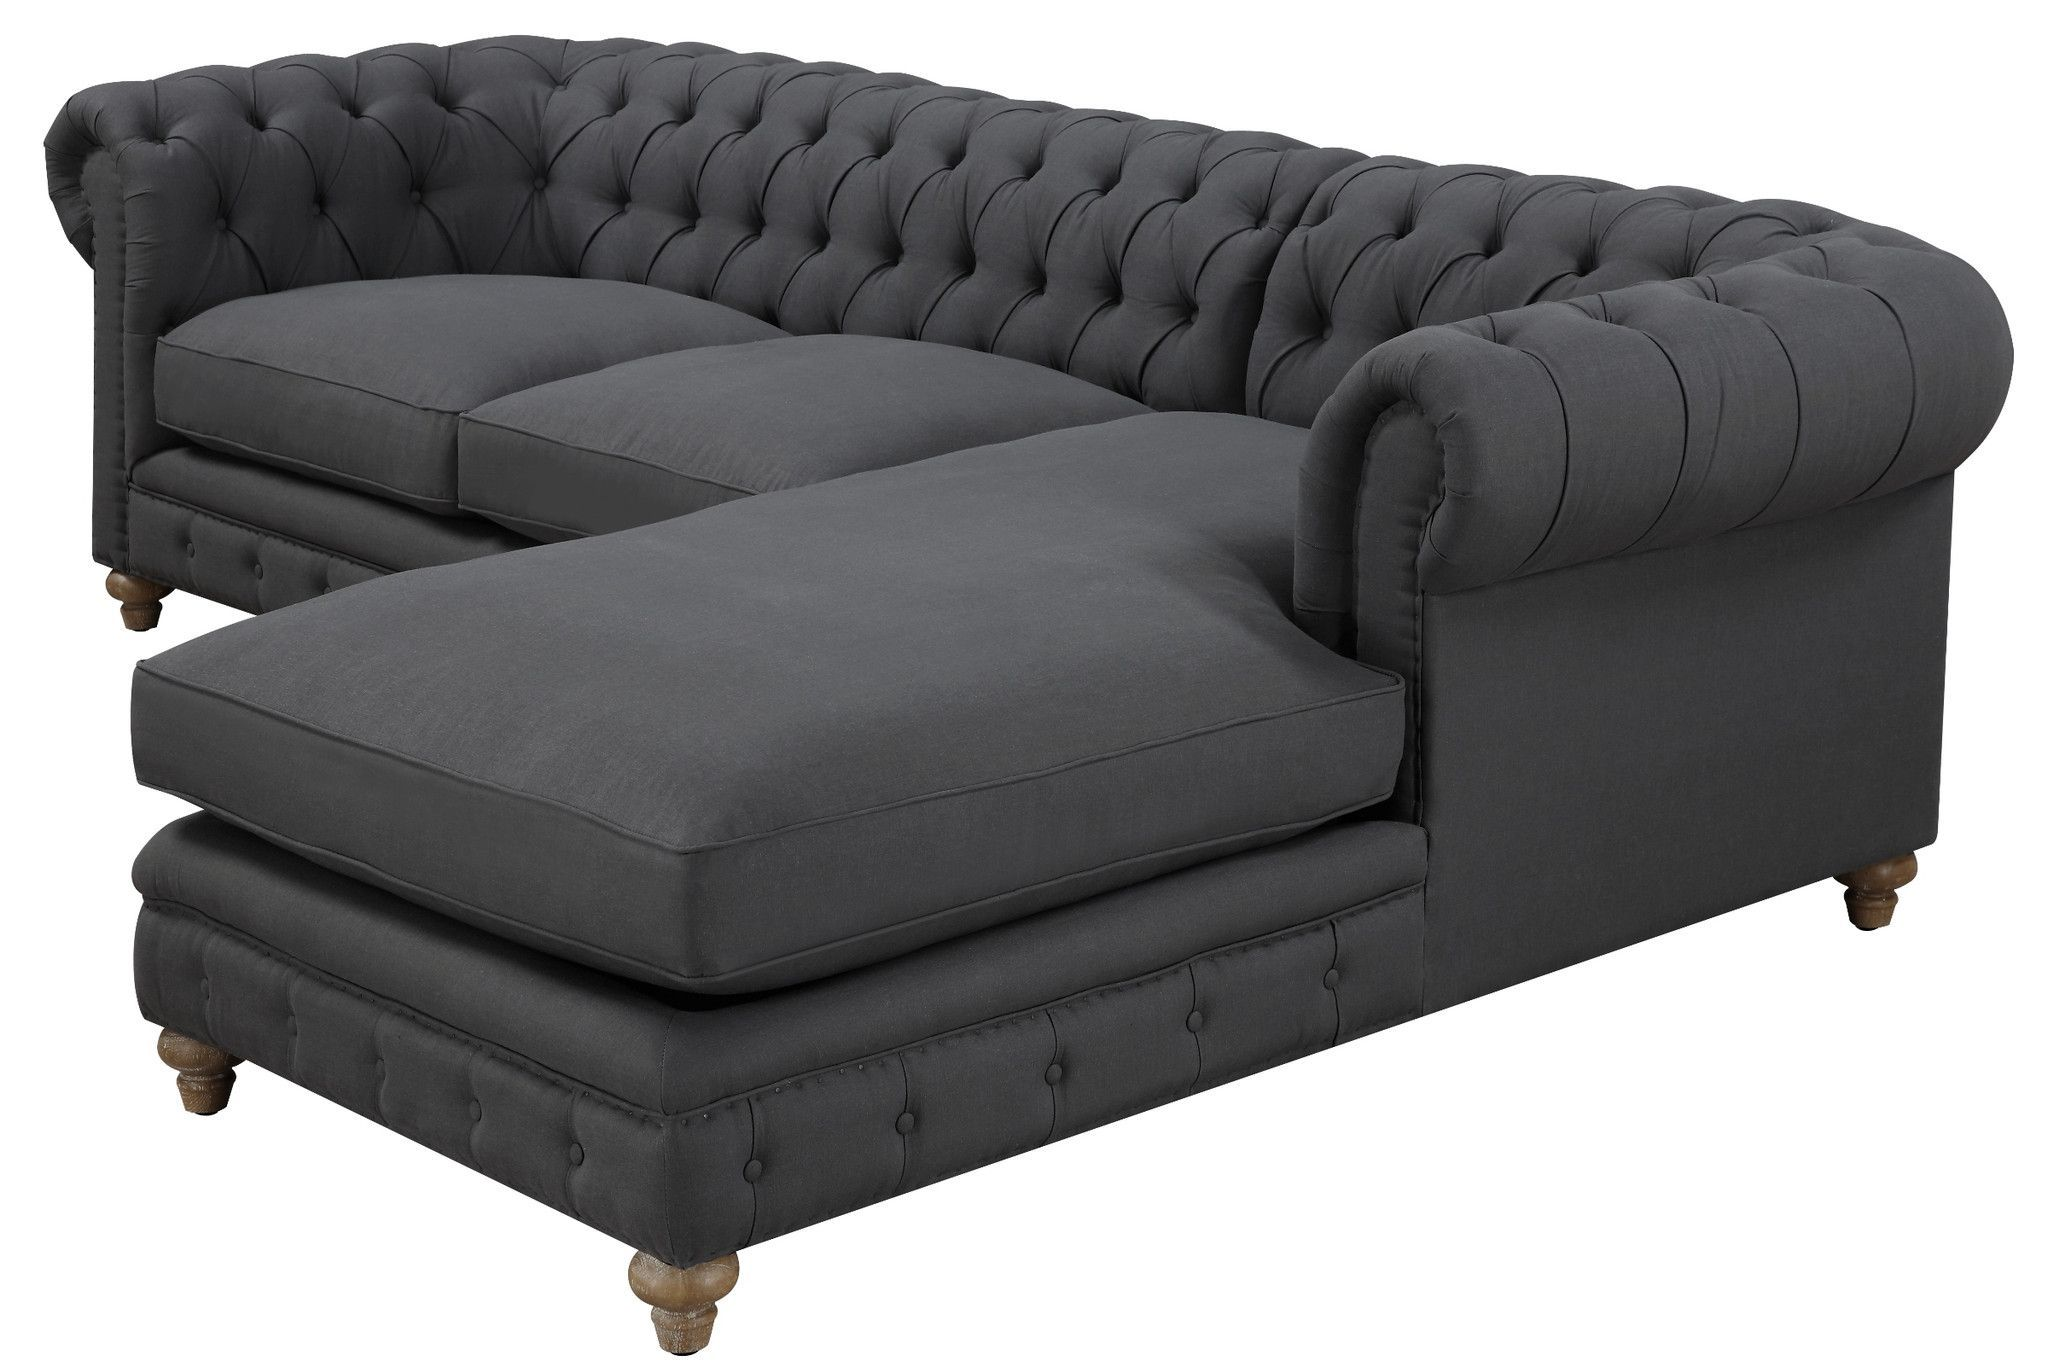 Chesterfield Linen Sectional Sofa Free Shipping Across Usa Emfurn Sofa De La Sala Muebles Para Pantallas Y Tapizar Muebles